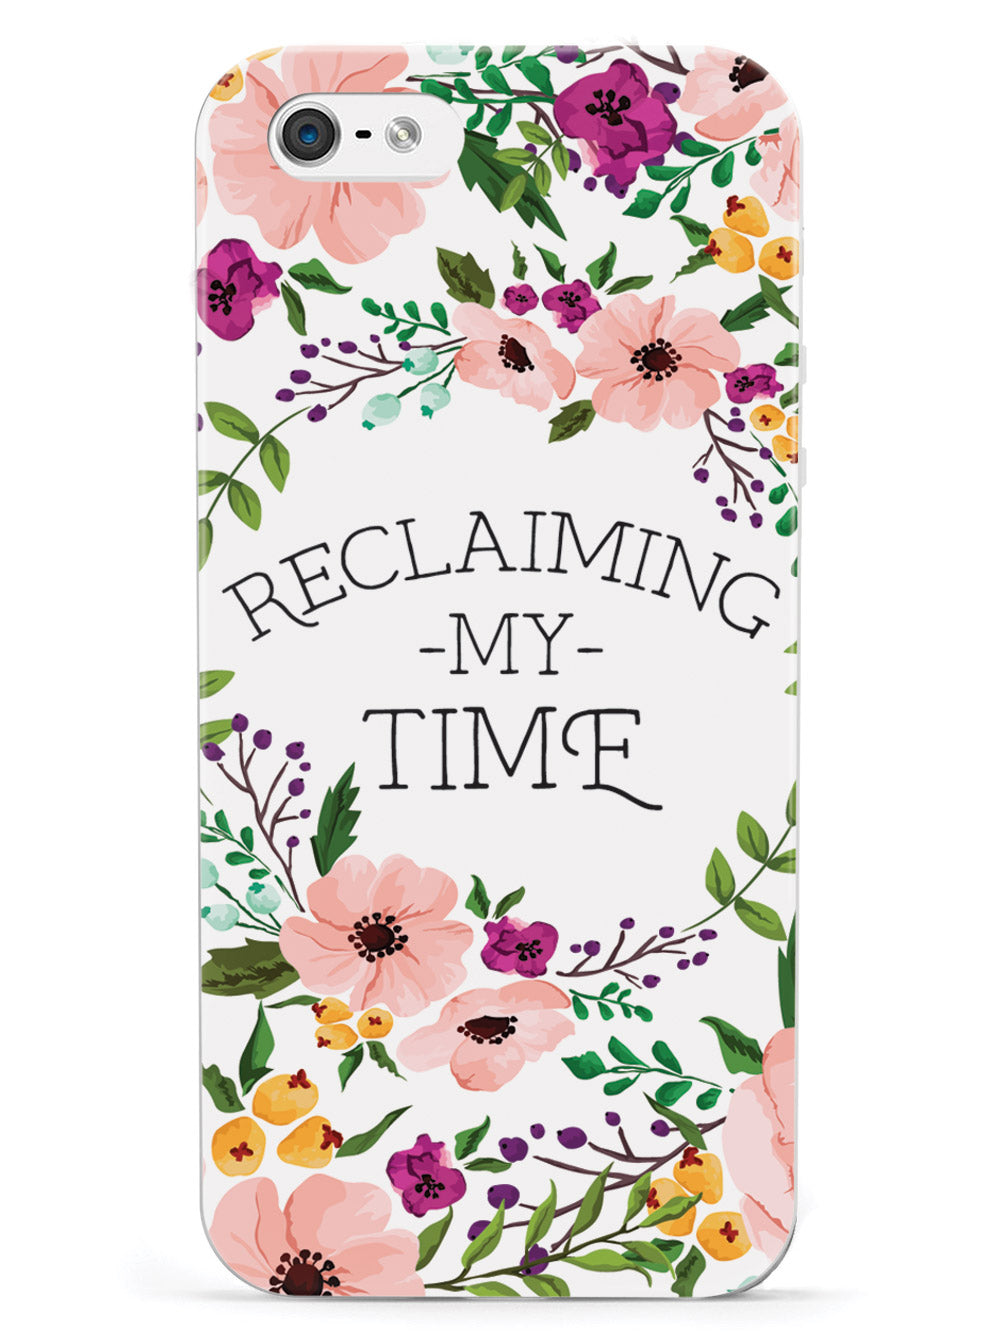 Reclaiming My Time - Flower Wreathe - White Case